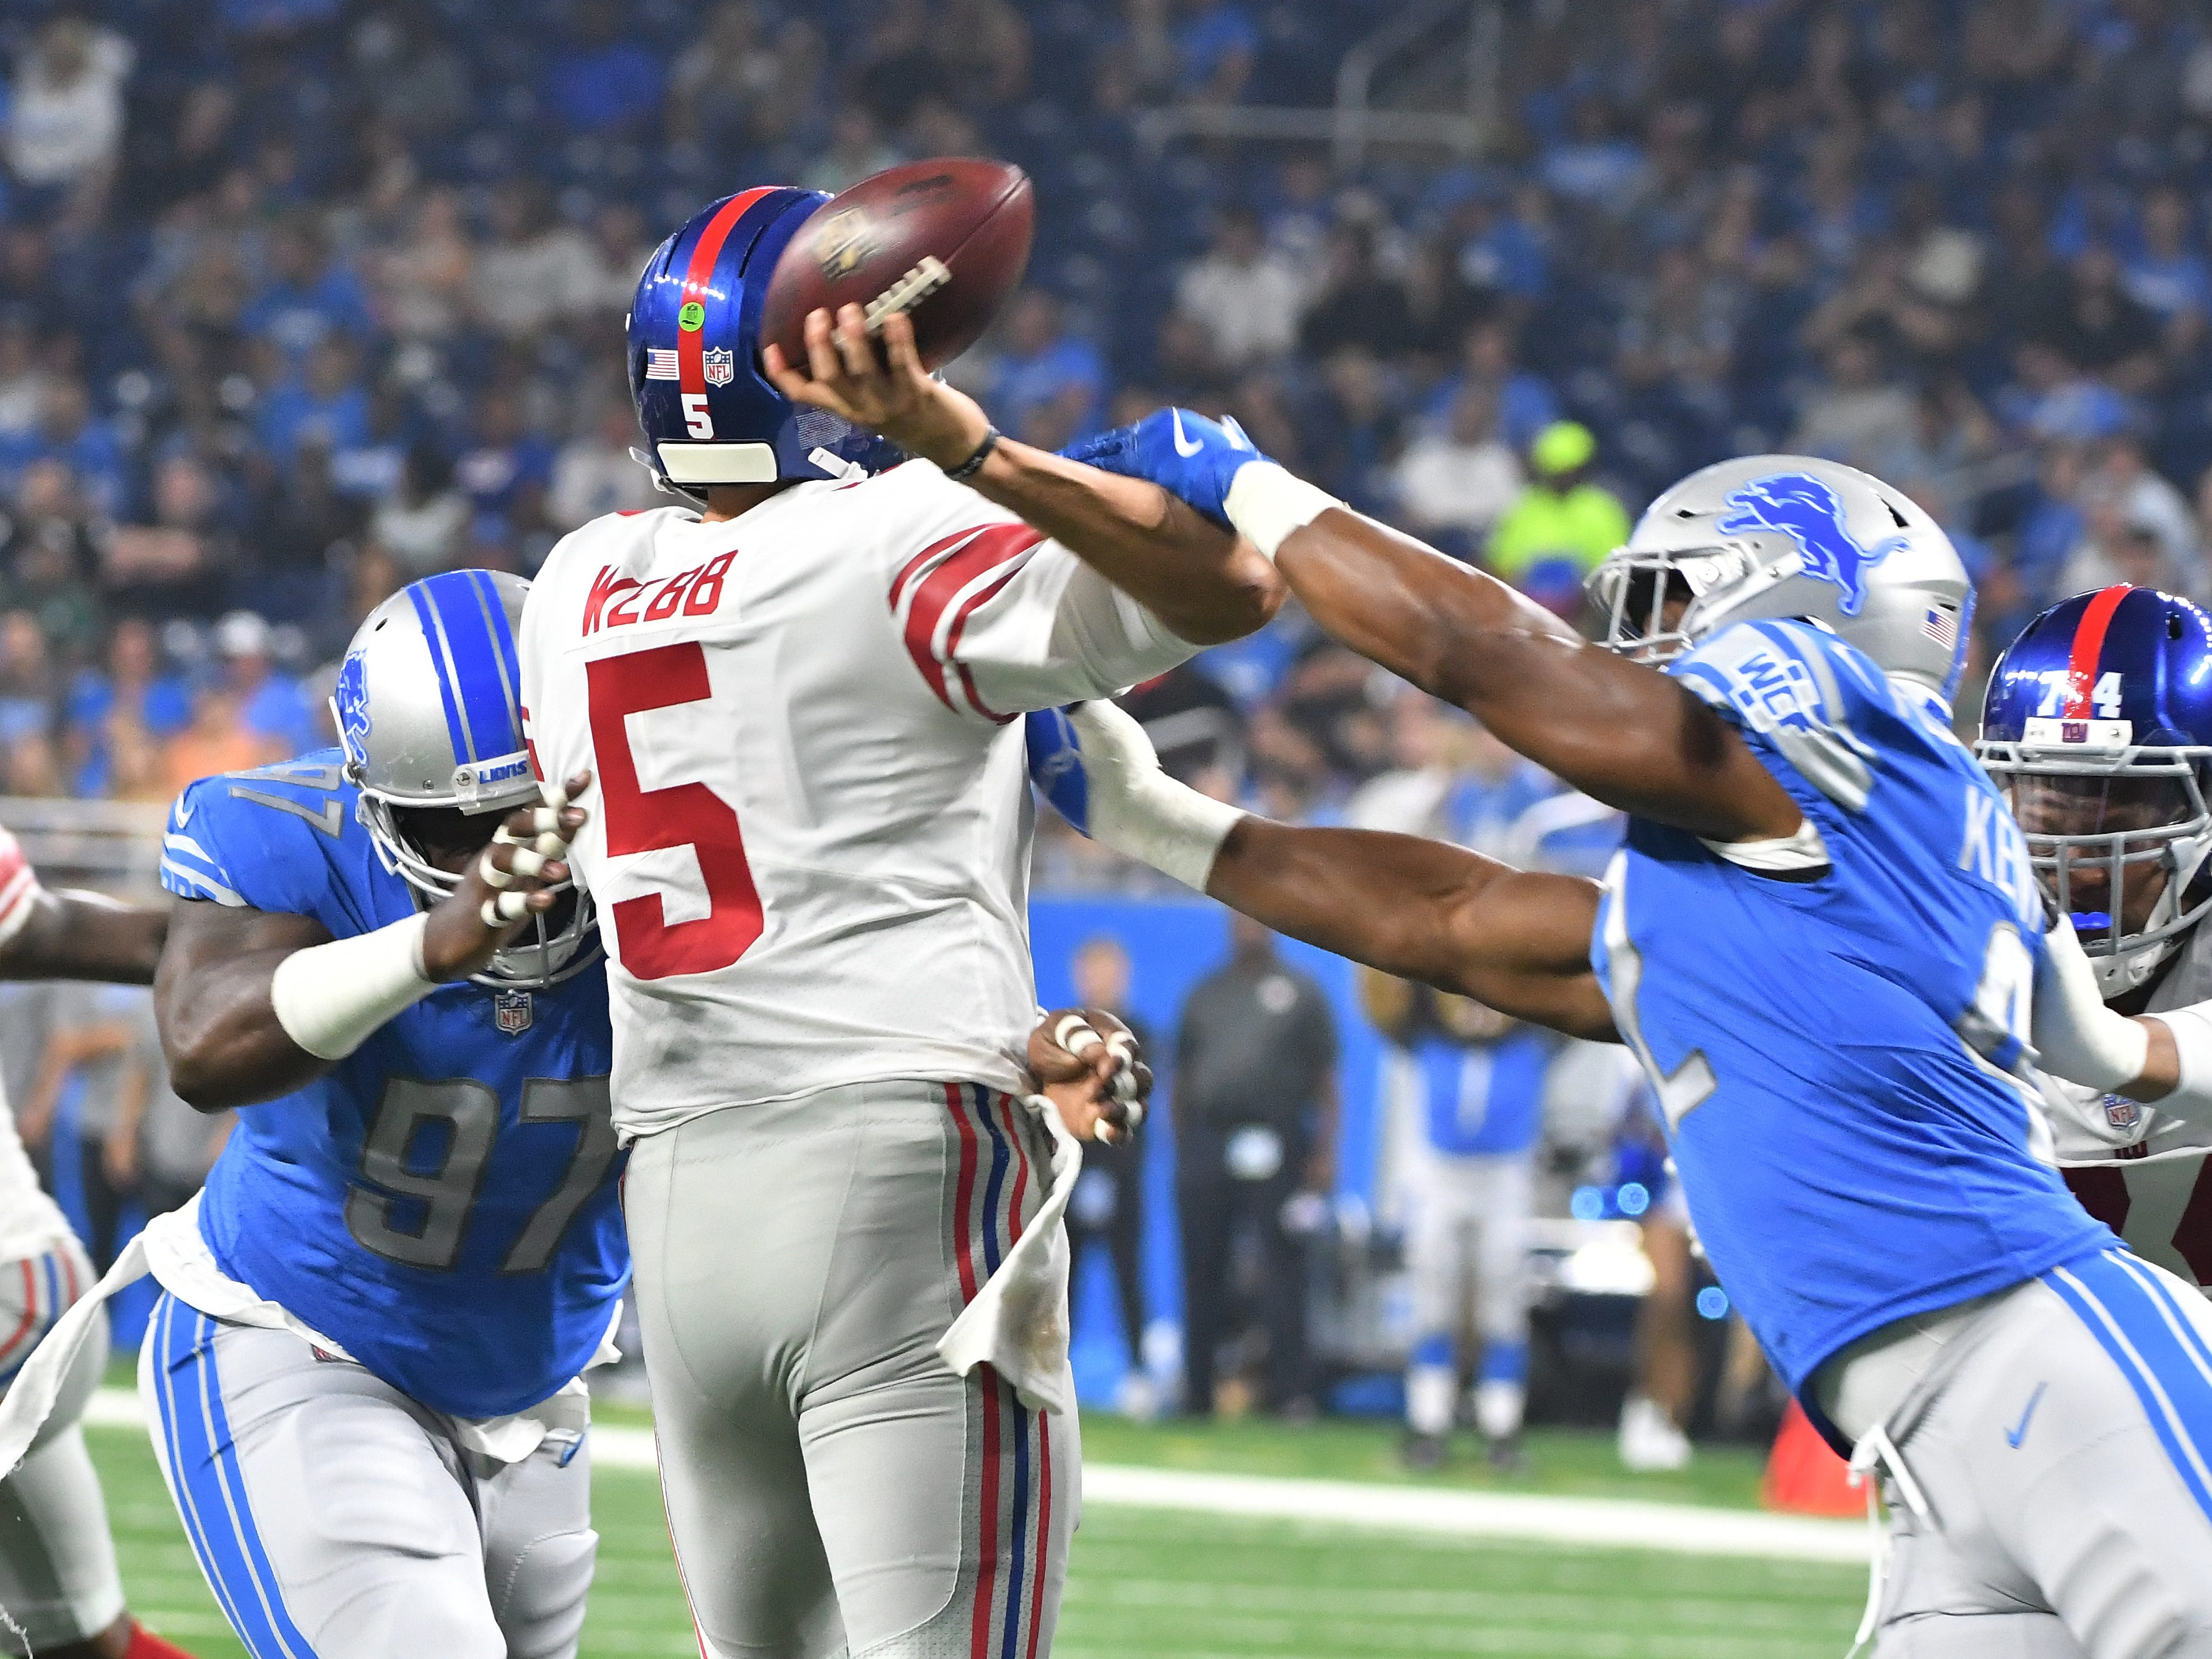 Lions' Devon Kennard gets a hand on Giants quarterback Davis Webb, causing a fumble, which Detroit recovered in the first quarter but after a review, it was ruled an incomplete pass.